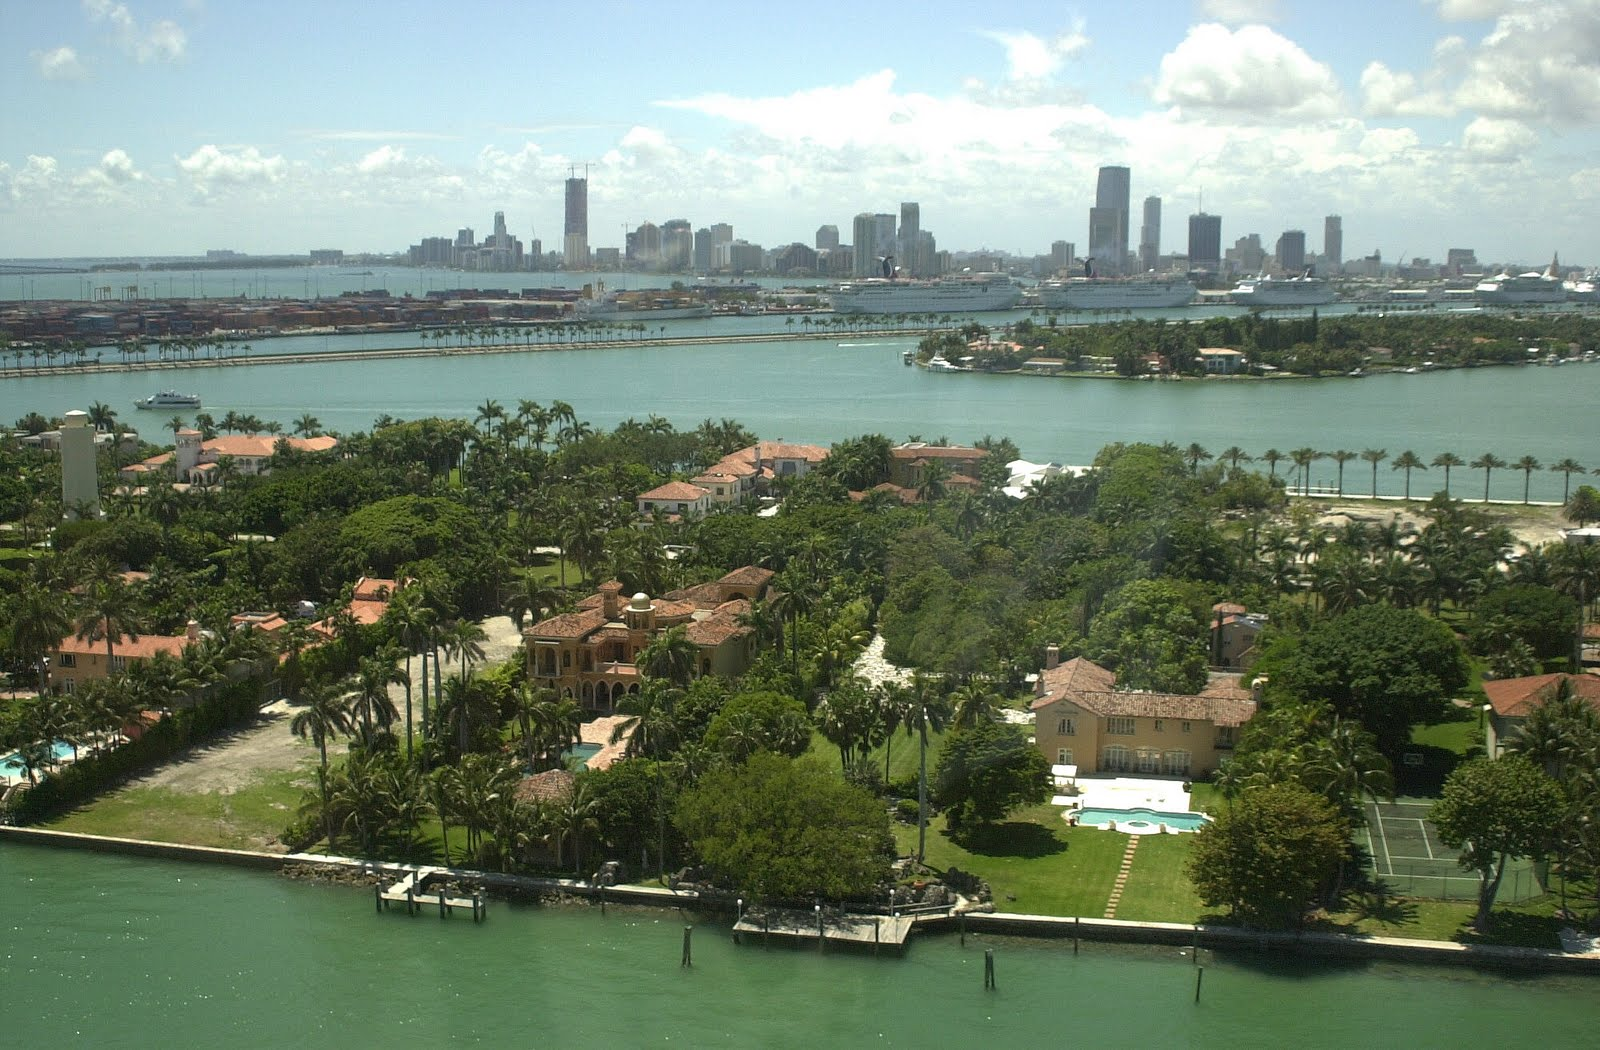 Star island real estate update miami real estate blog for Star island miami houses